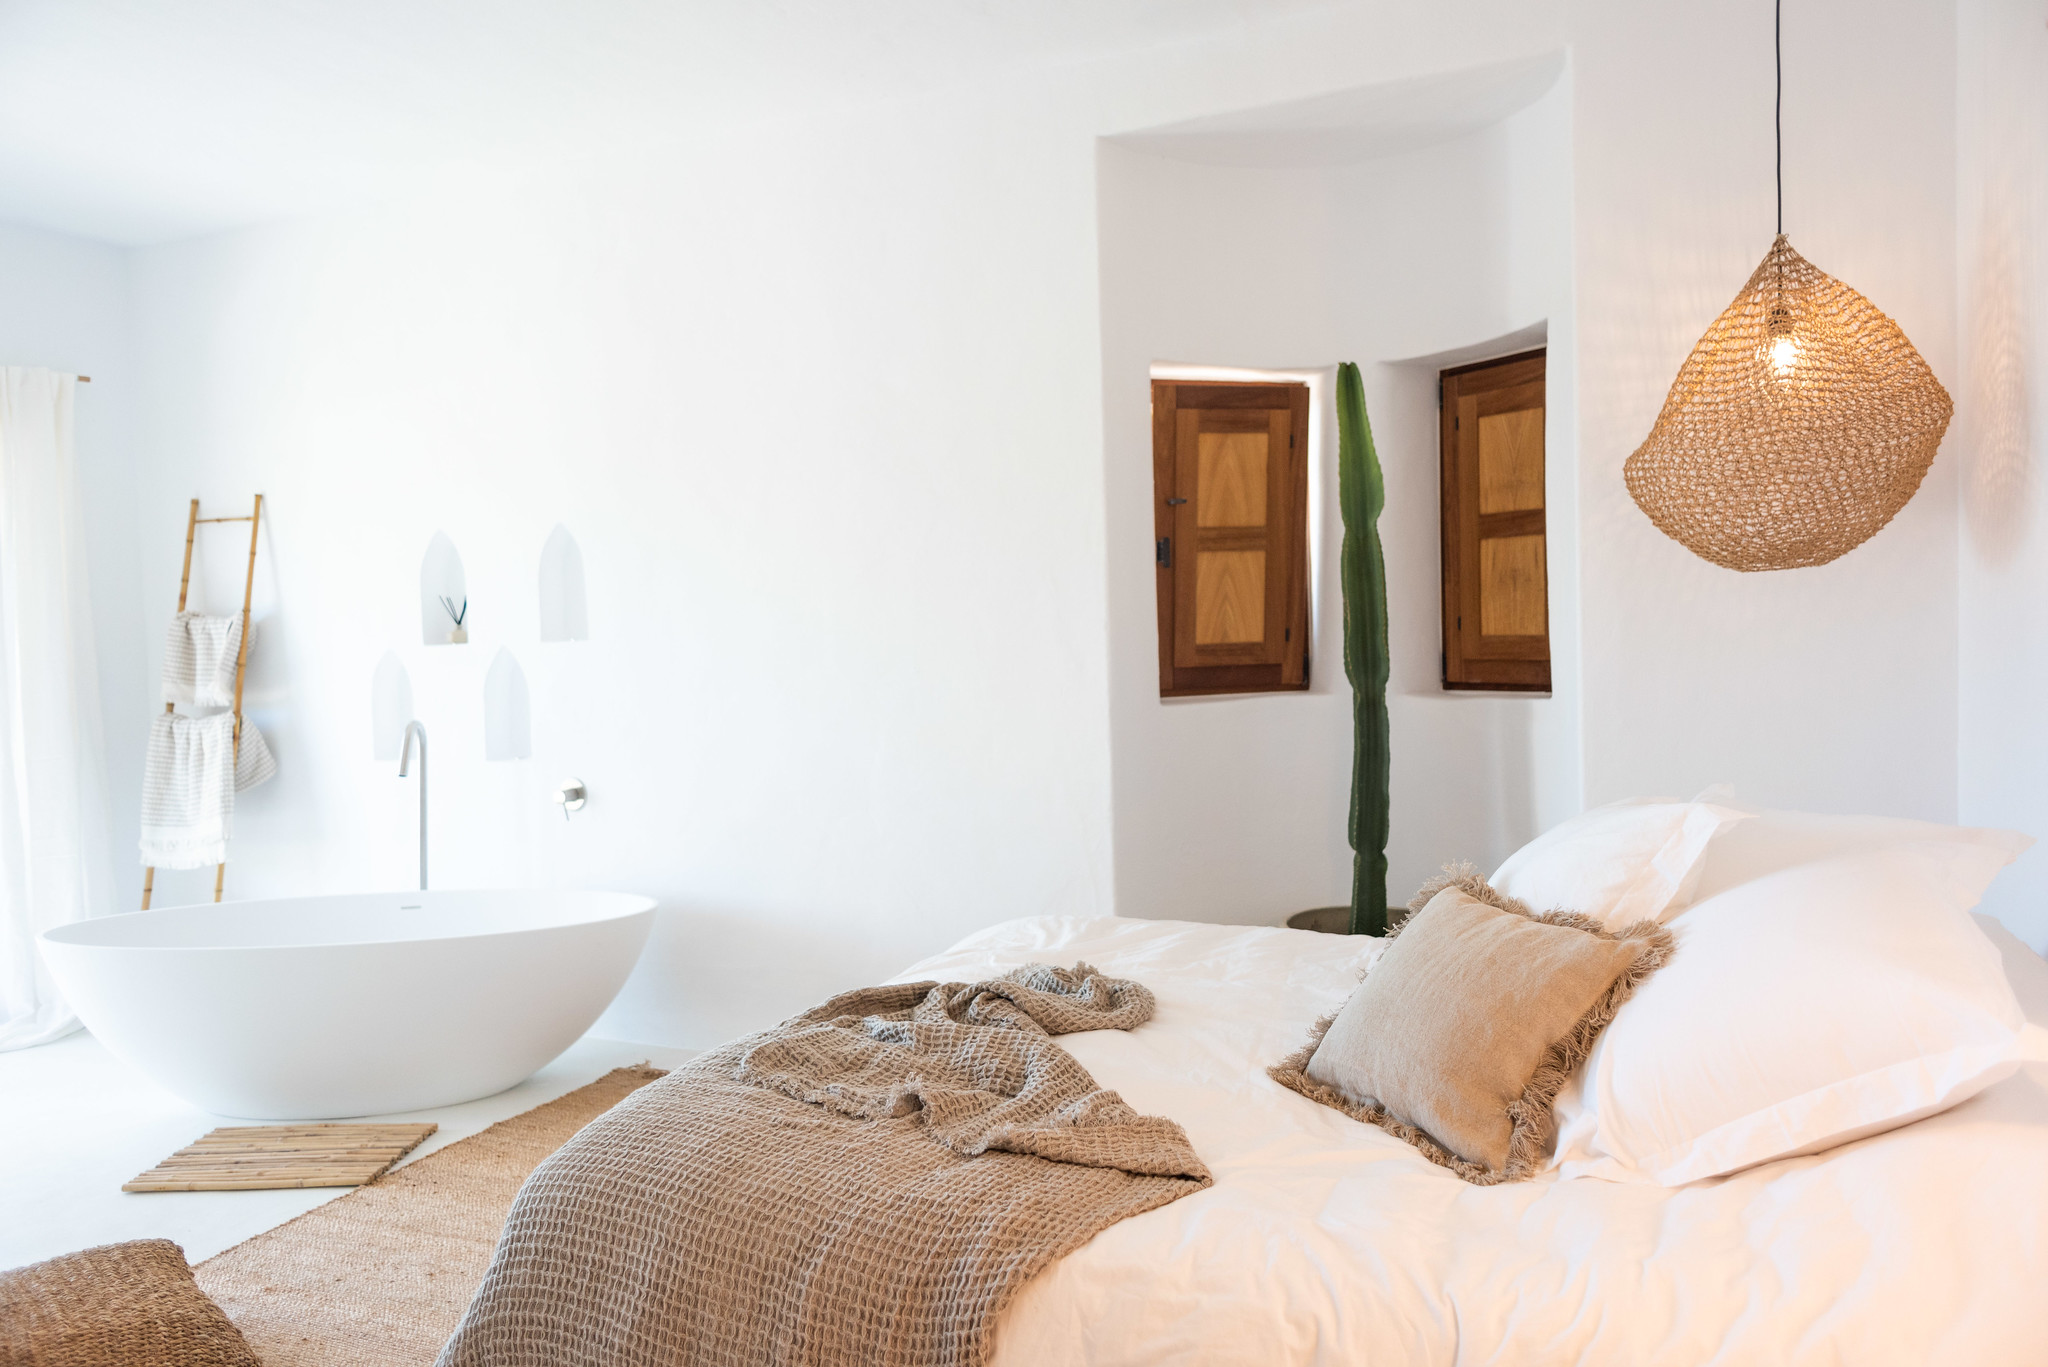 https://www.white-ibiza.com/wp-content/uploads/2020/05/white-ibiza-villas-can-cactus-master2.jpg